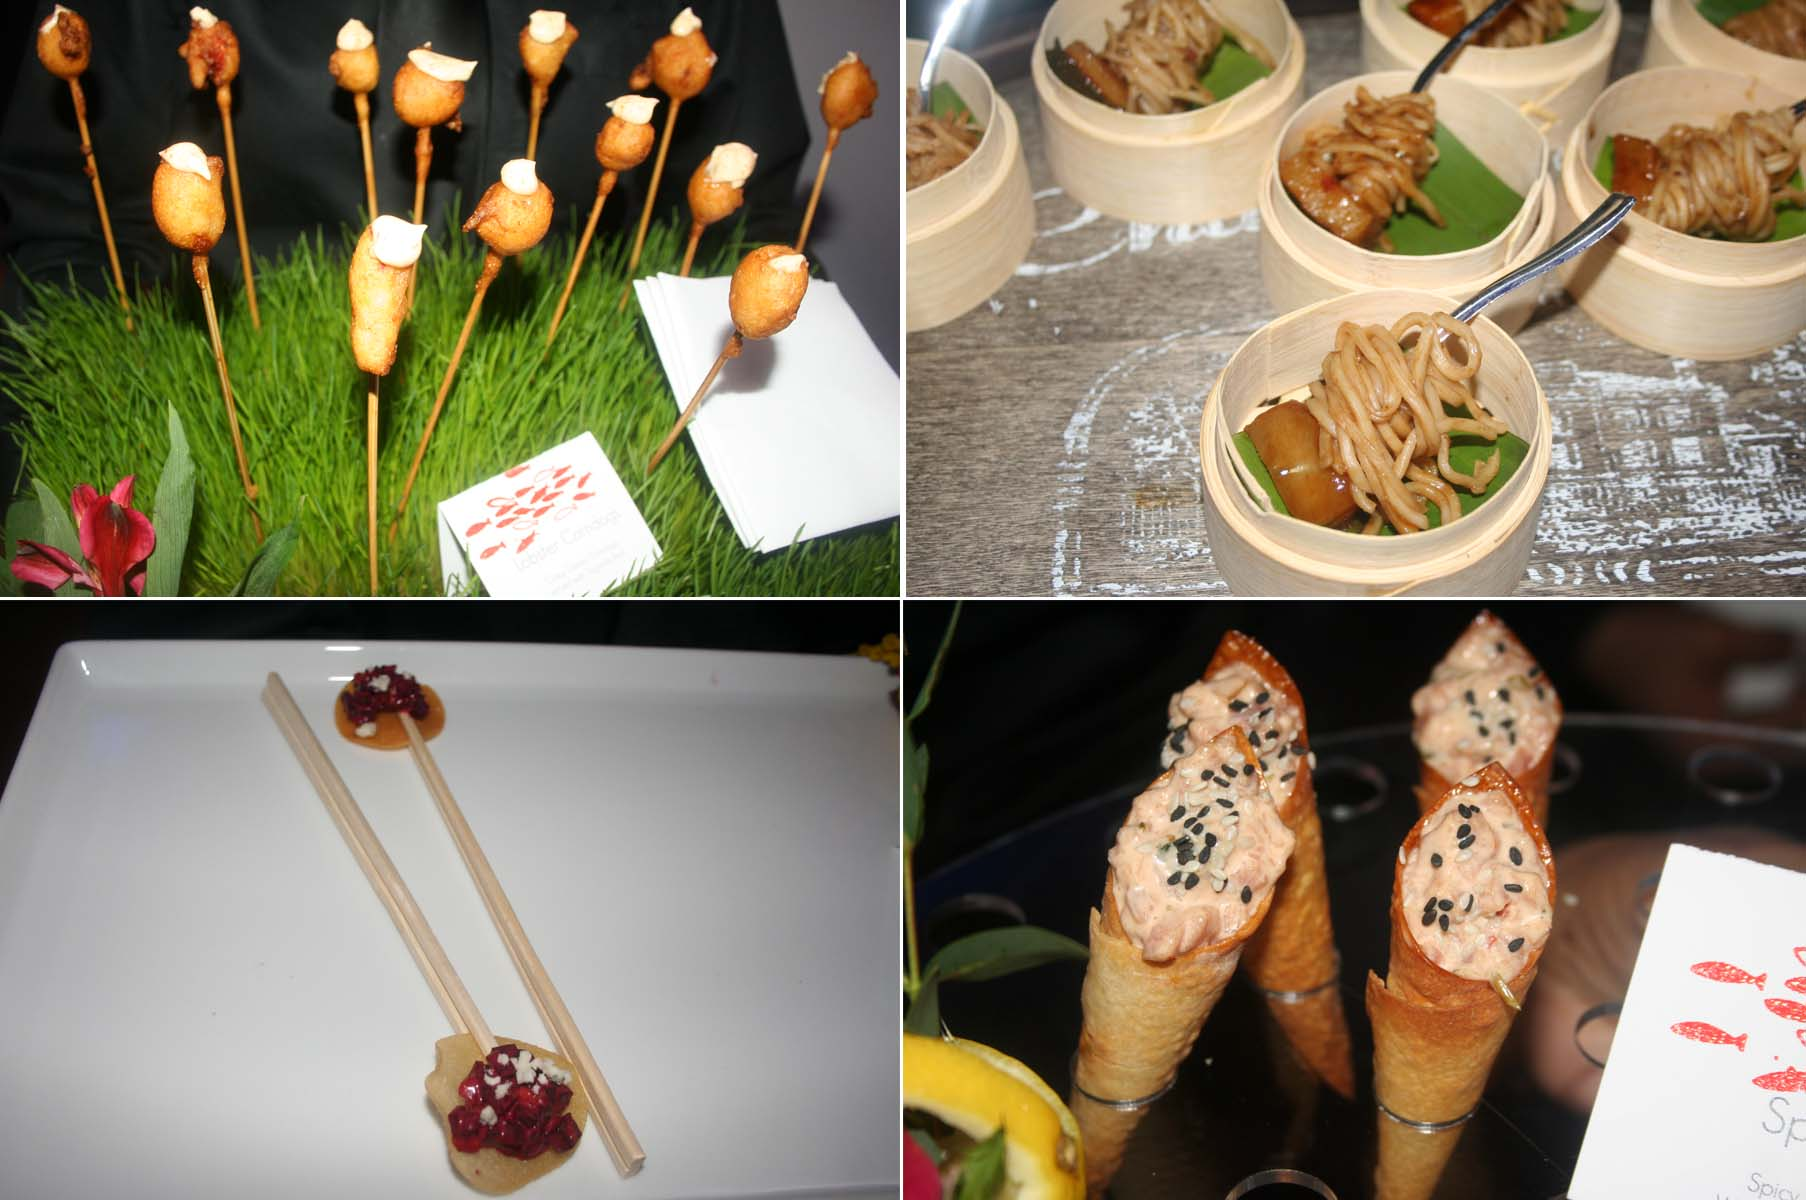 Hors d'oeuvres from Spilled Milk Catering included lobster corndogs (clockwise from top left), Chinese pork belly, spicy tuna in a wonton cone and roasted beet salad. (Photos: Mark Heckathorn/DC on Heels)